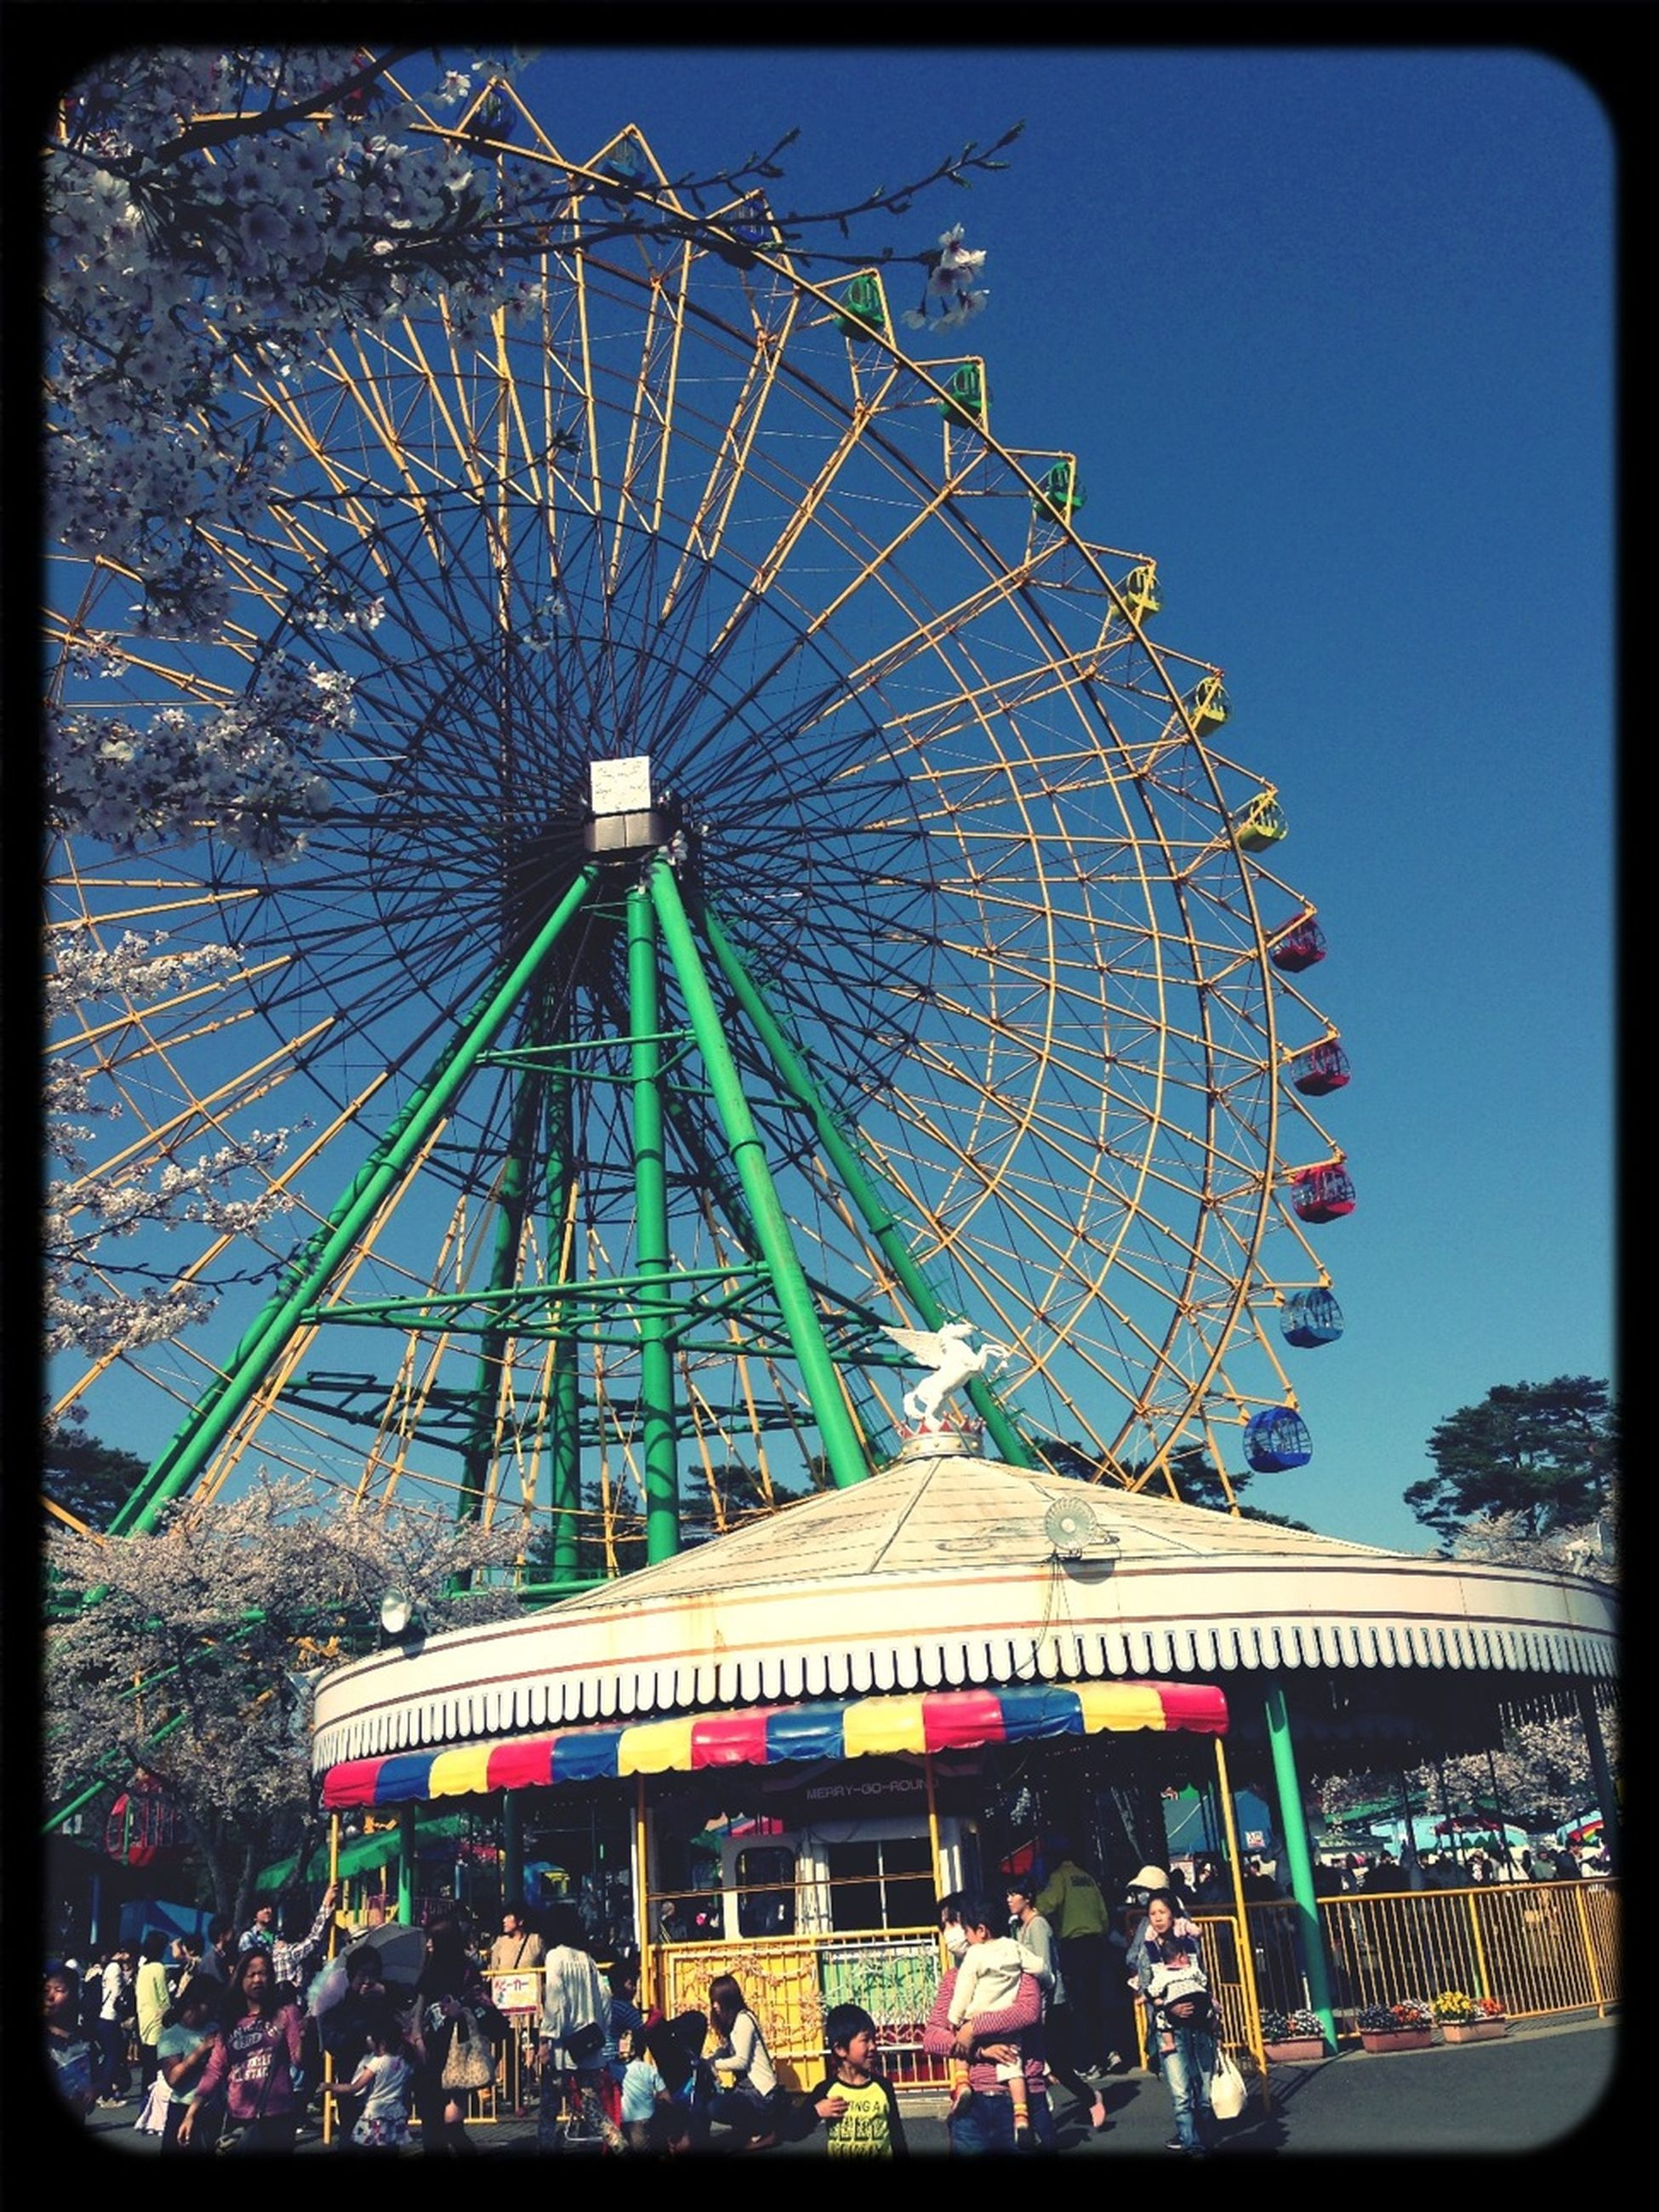 amusement park, amusement park ride, ferris wheel, arts culture and entertainment, clear sky, low angle view, transfer print, built structure, fun, blue, auto post production filter, architecture, metal, sky, enjoyment, outdoors, traveling carnival, day, circle, leisure activity